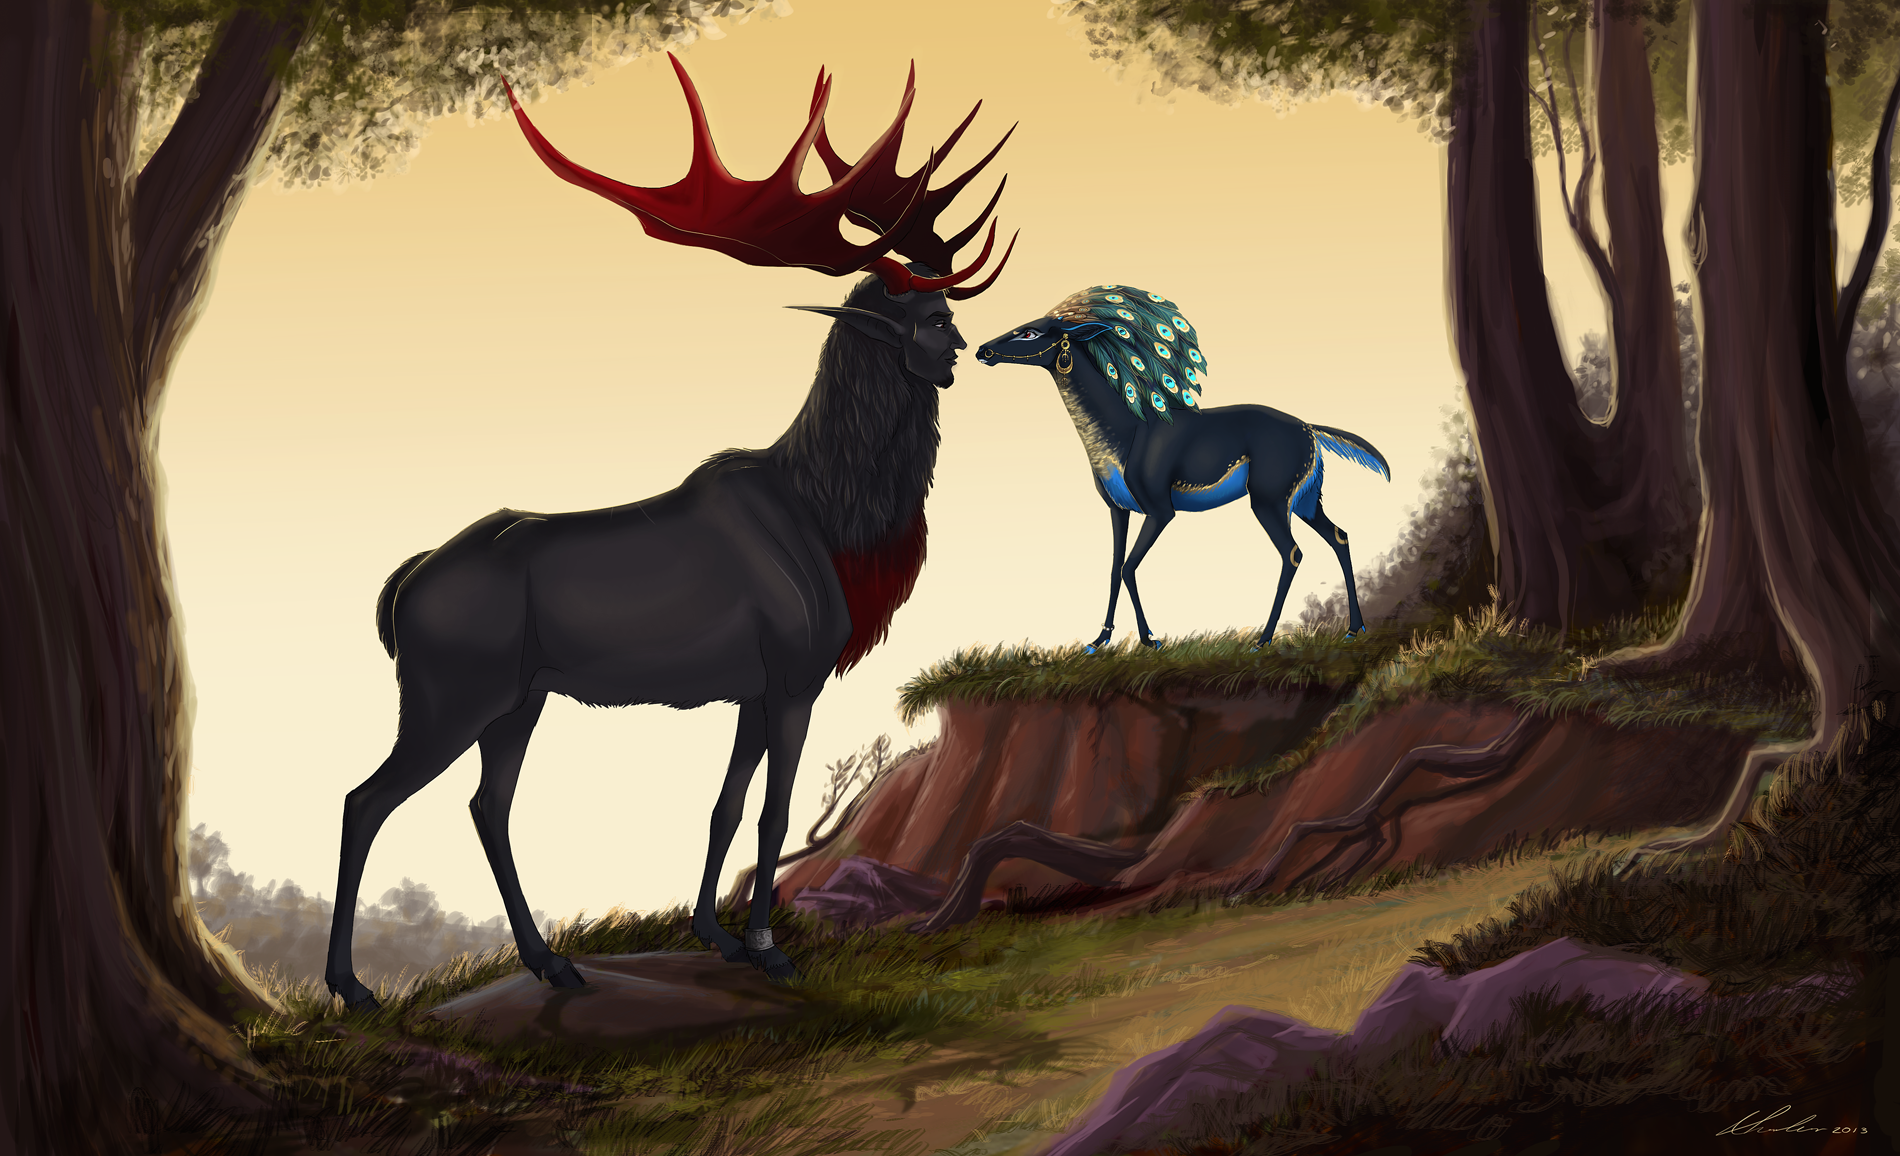 Drawn buck the endless forest Forest This In by Hearts